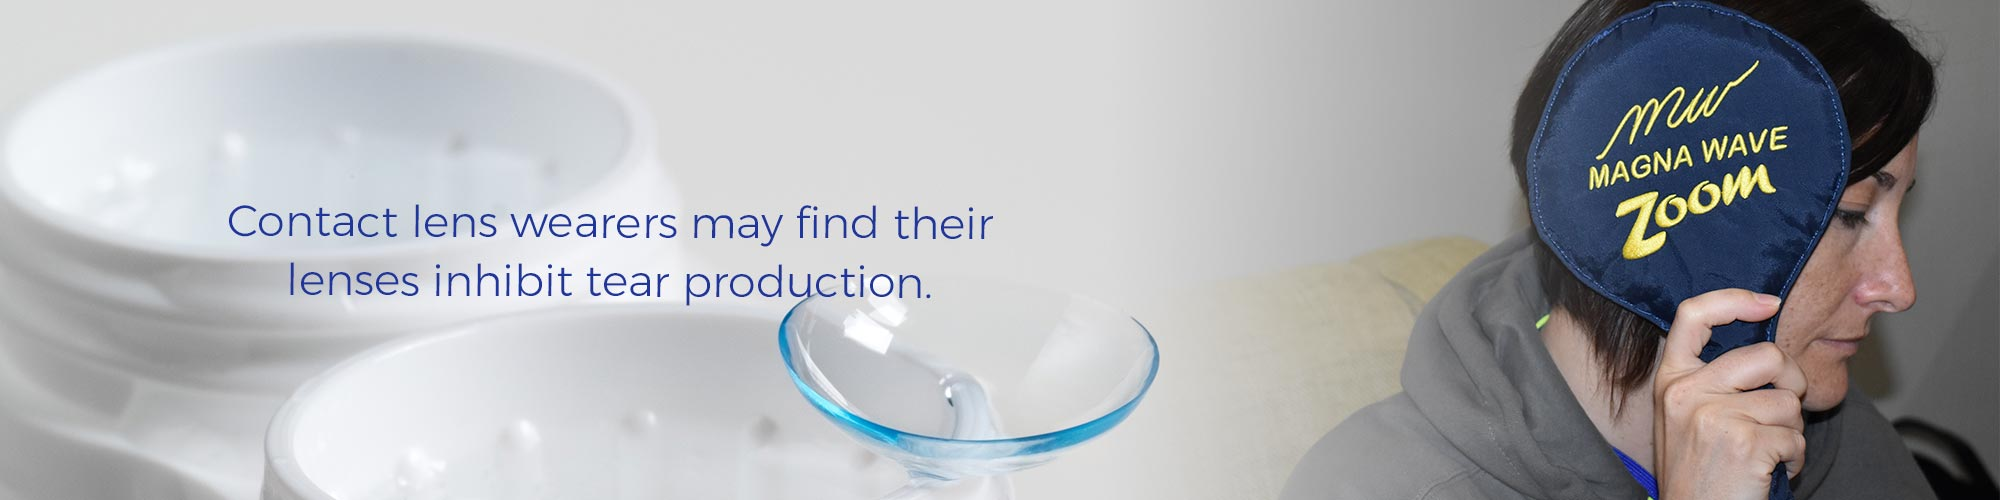 Contact lens wearers may find their lenses inhibit tear production.